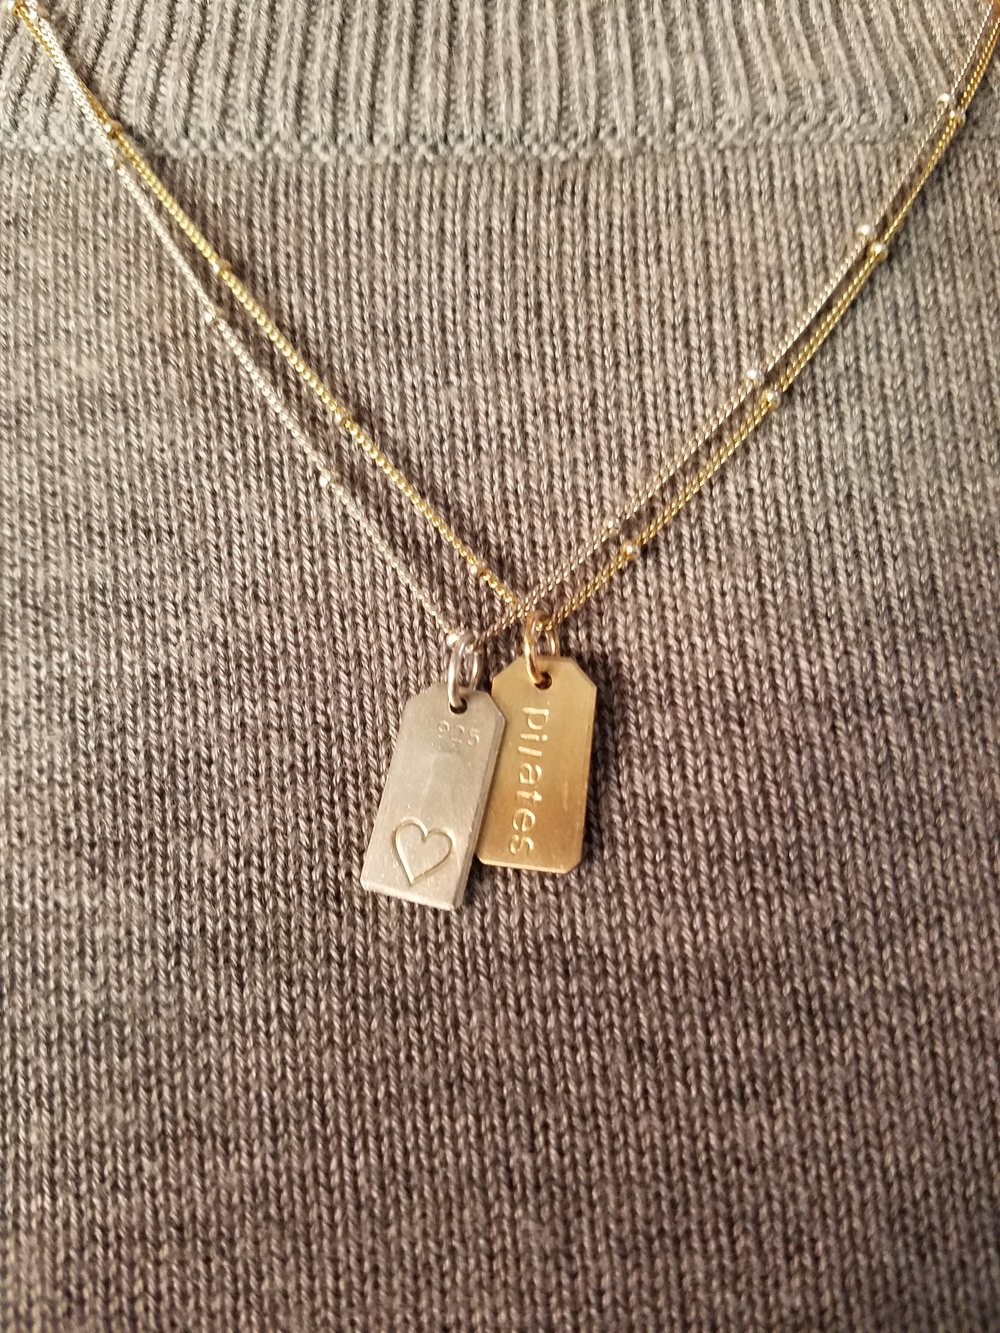 my favorite necklace